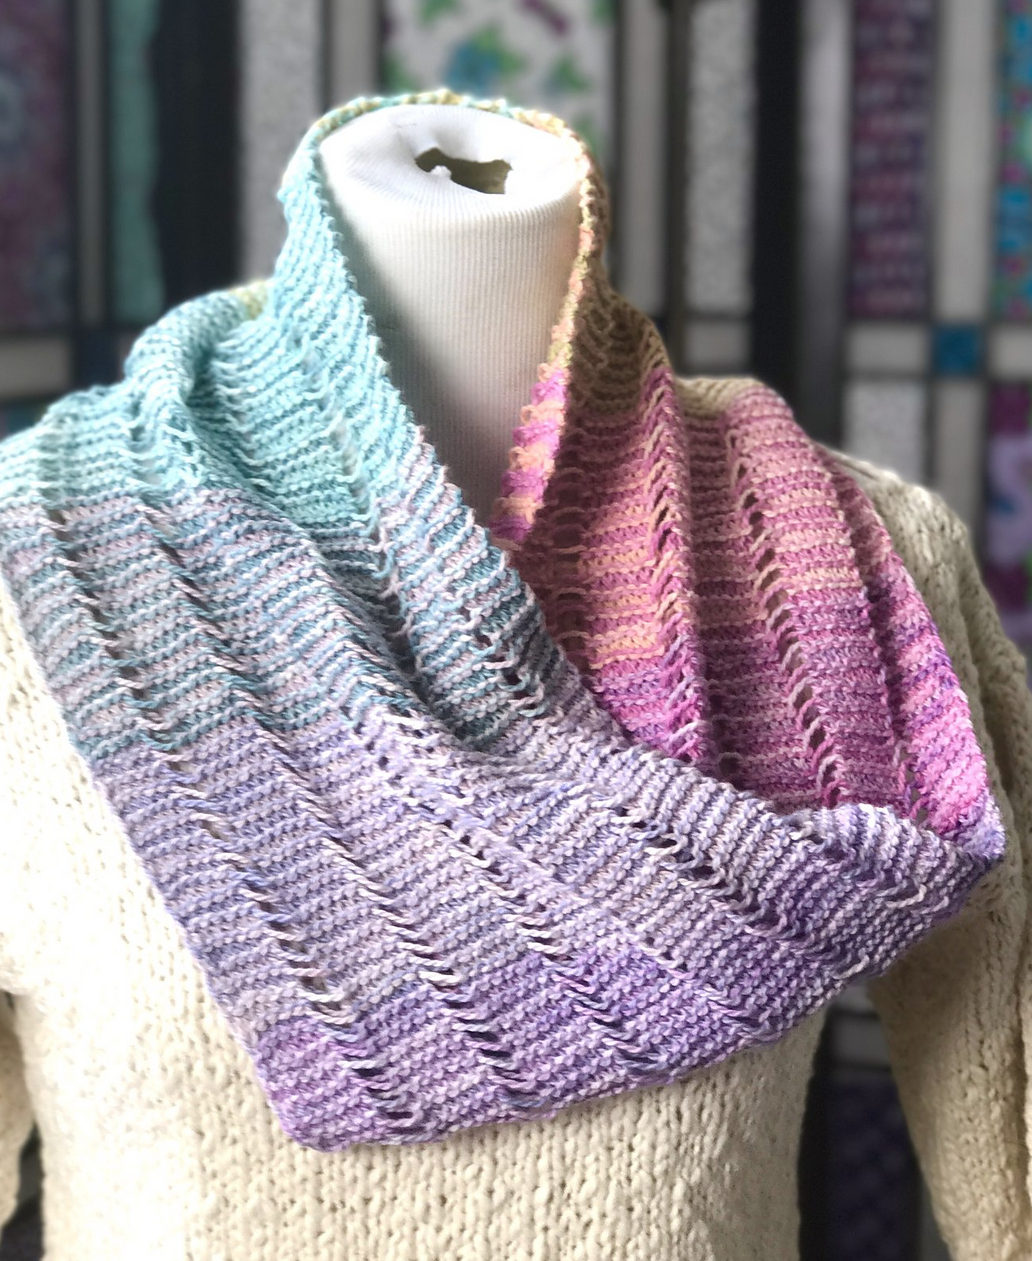 Free Knitting Pattern for Serene Sampler Cowl